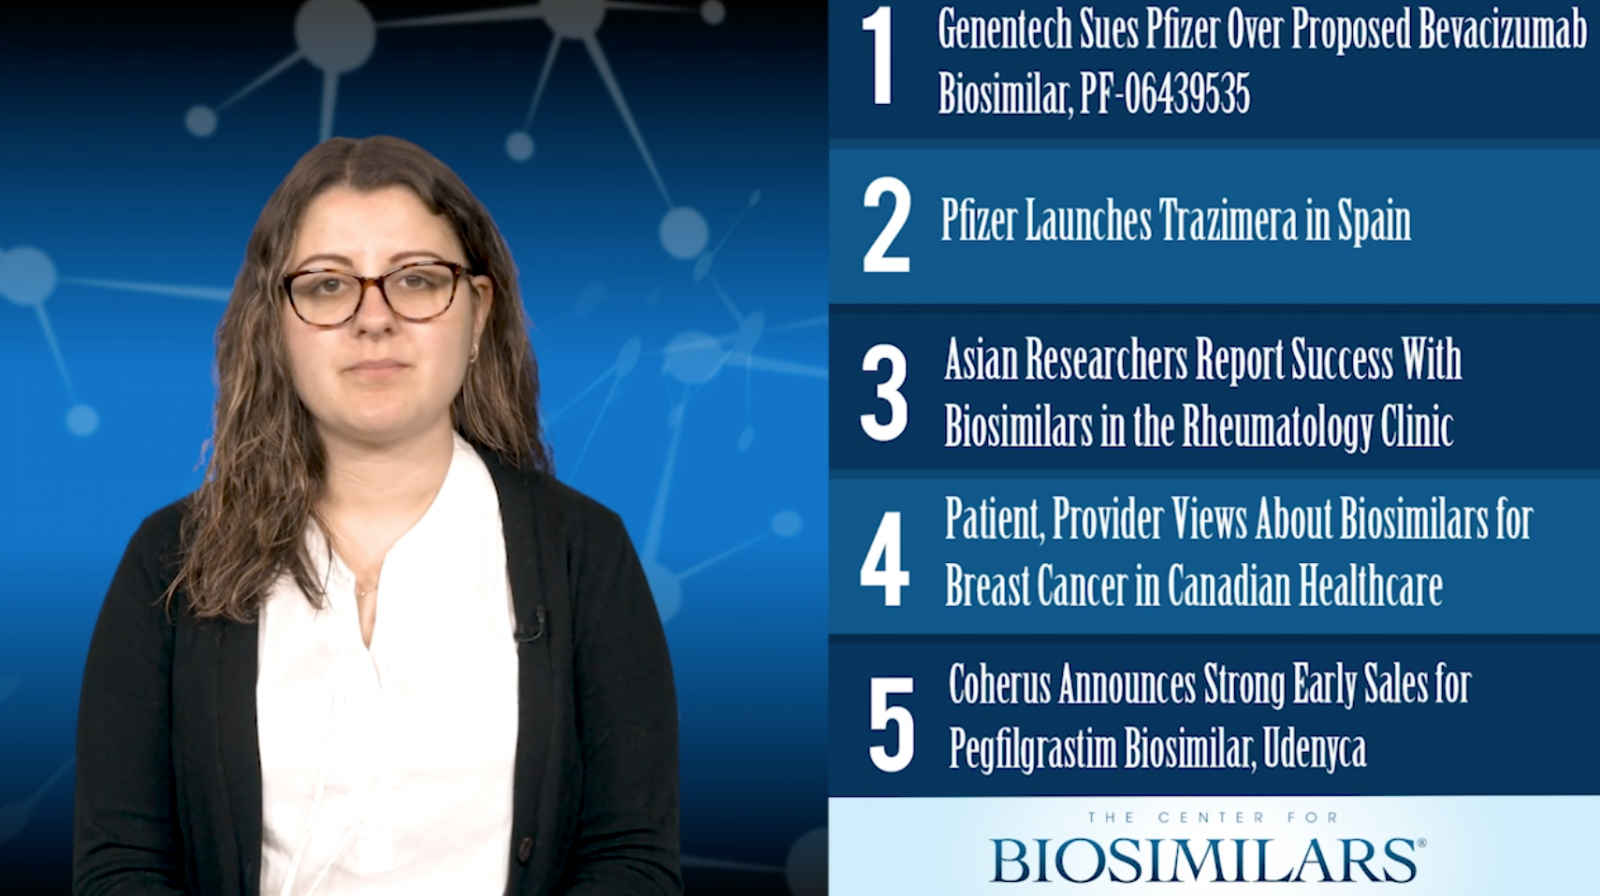 The Top 5 Biosimilars Articles for the Week of April 8